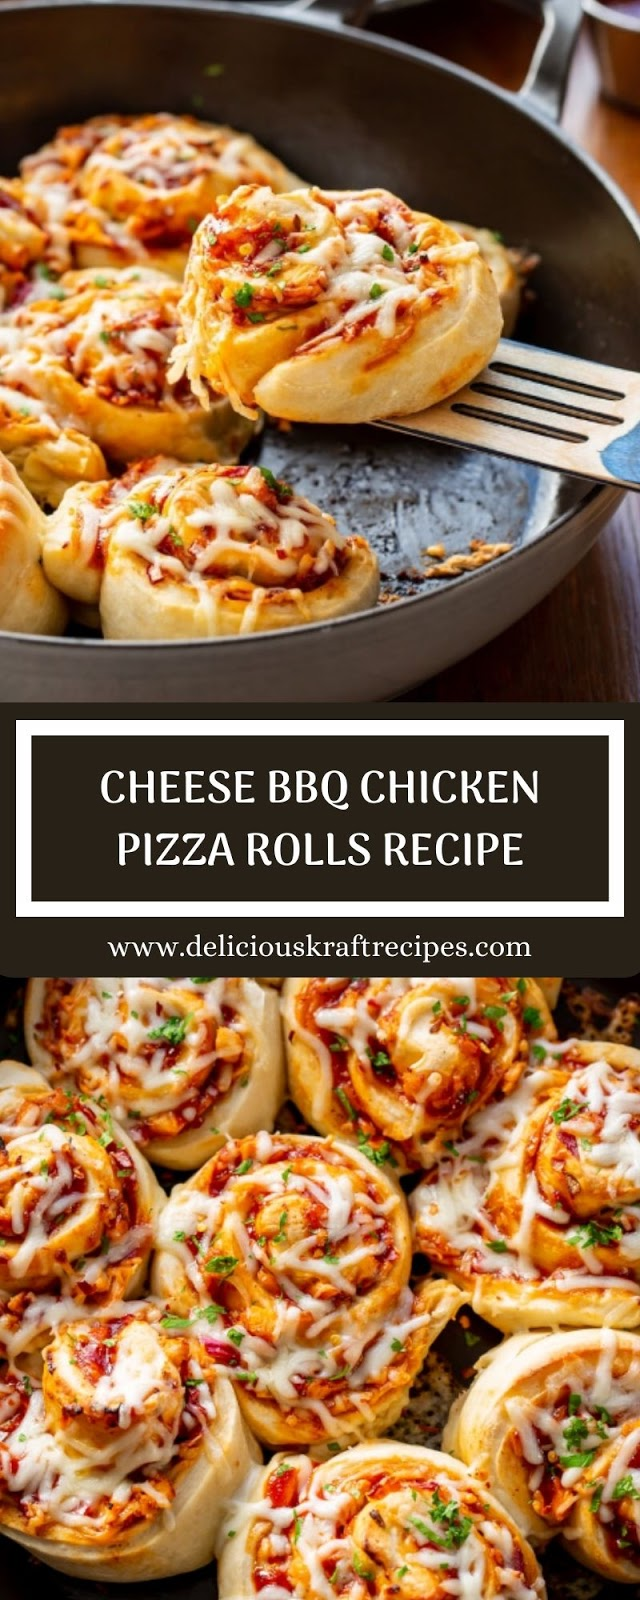 CHEESE BBQ CHICKEN PIZZA ROLLS RECIPE